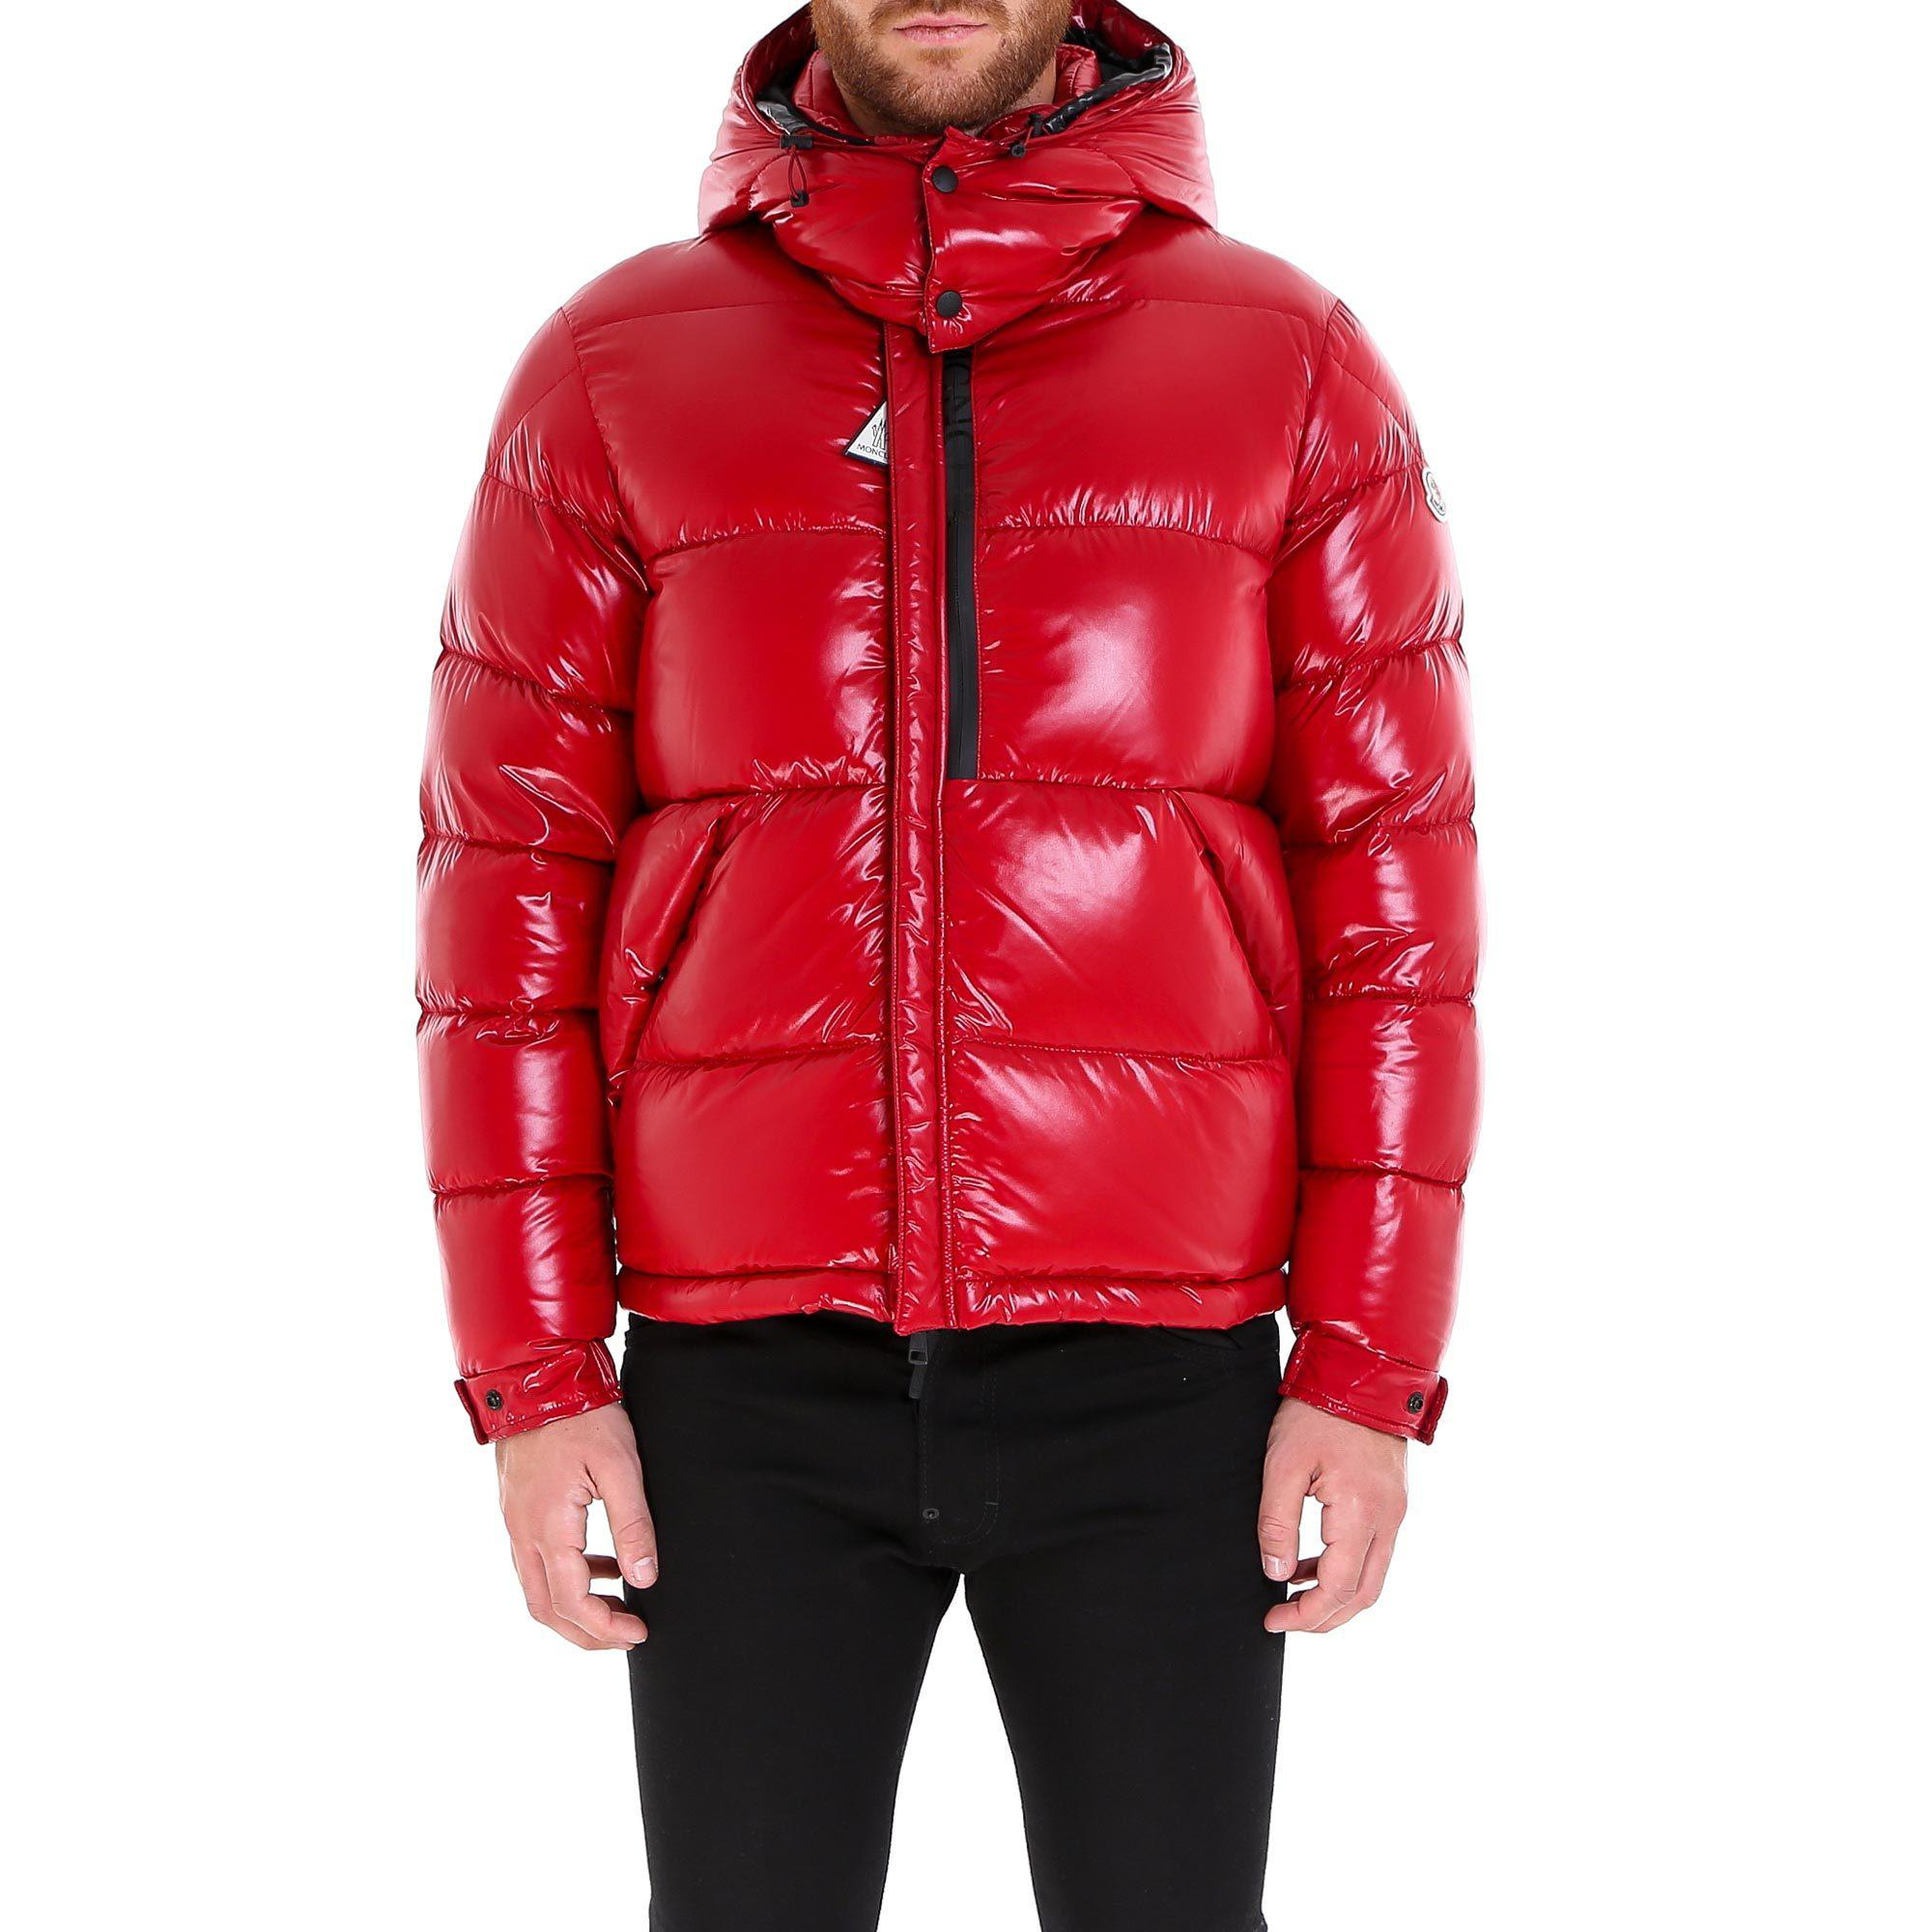 80c96995a low price moncler jacket red jeans 0cc3f 5d534